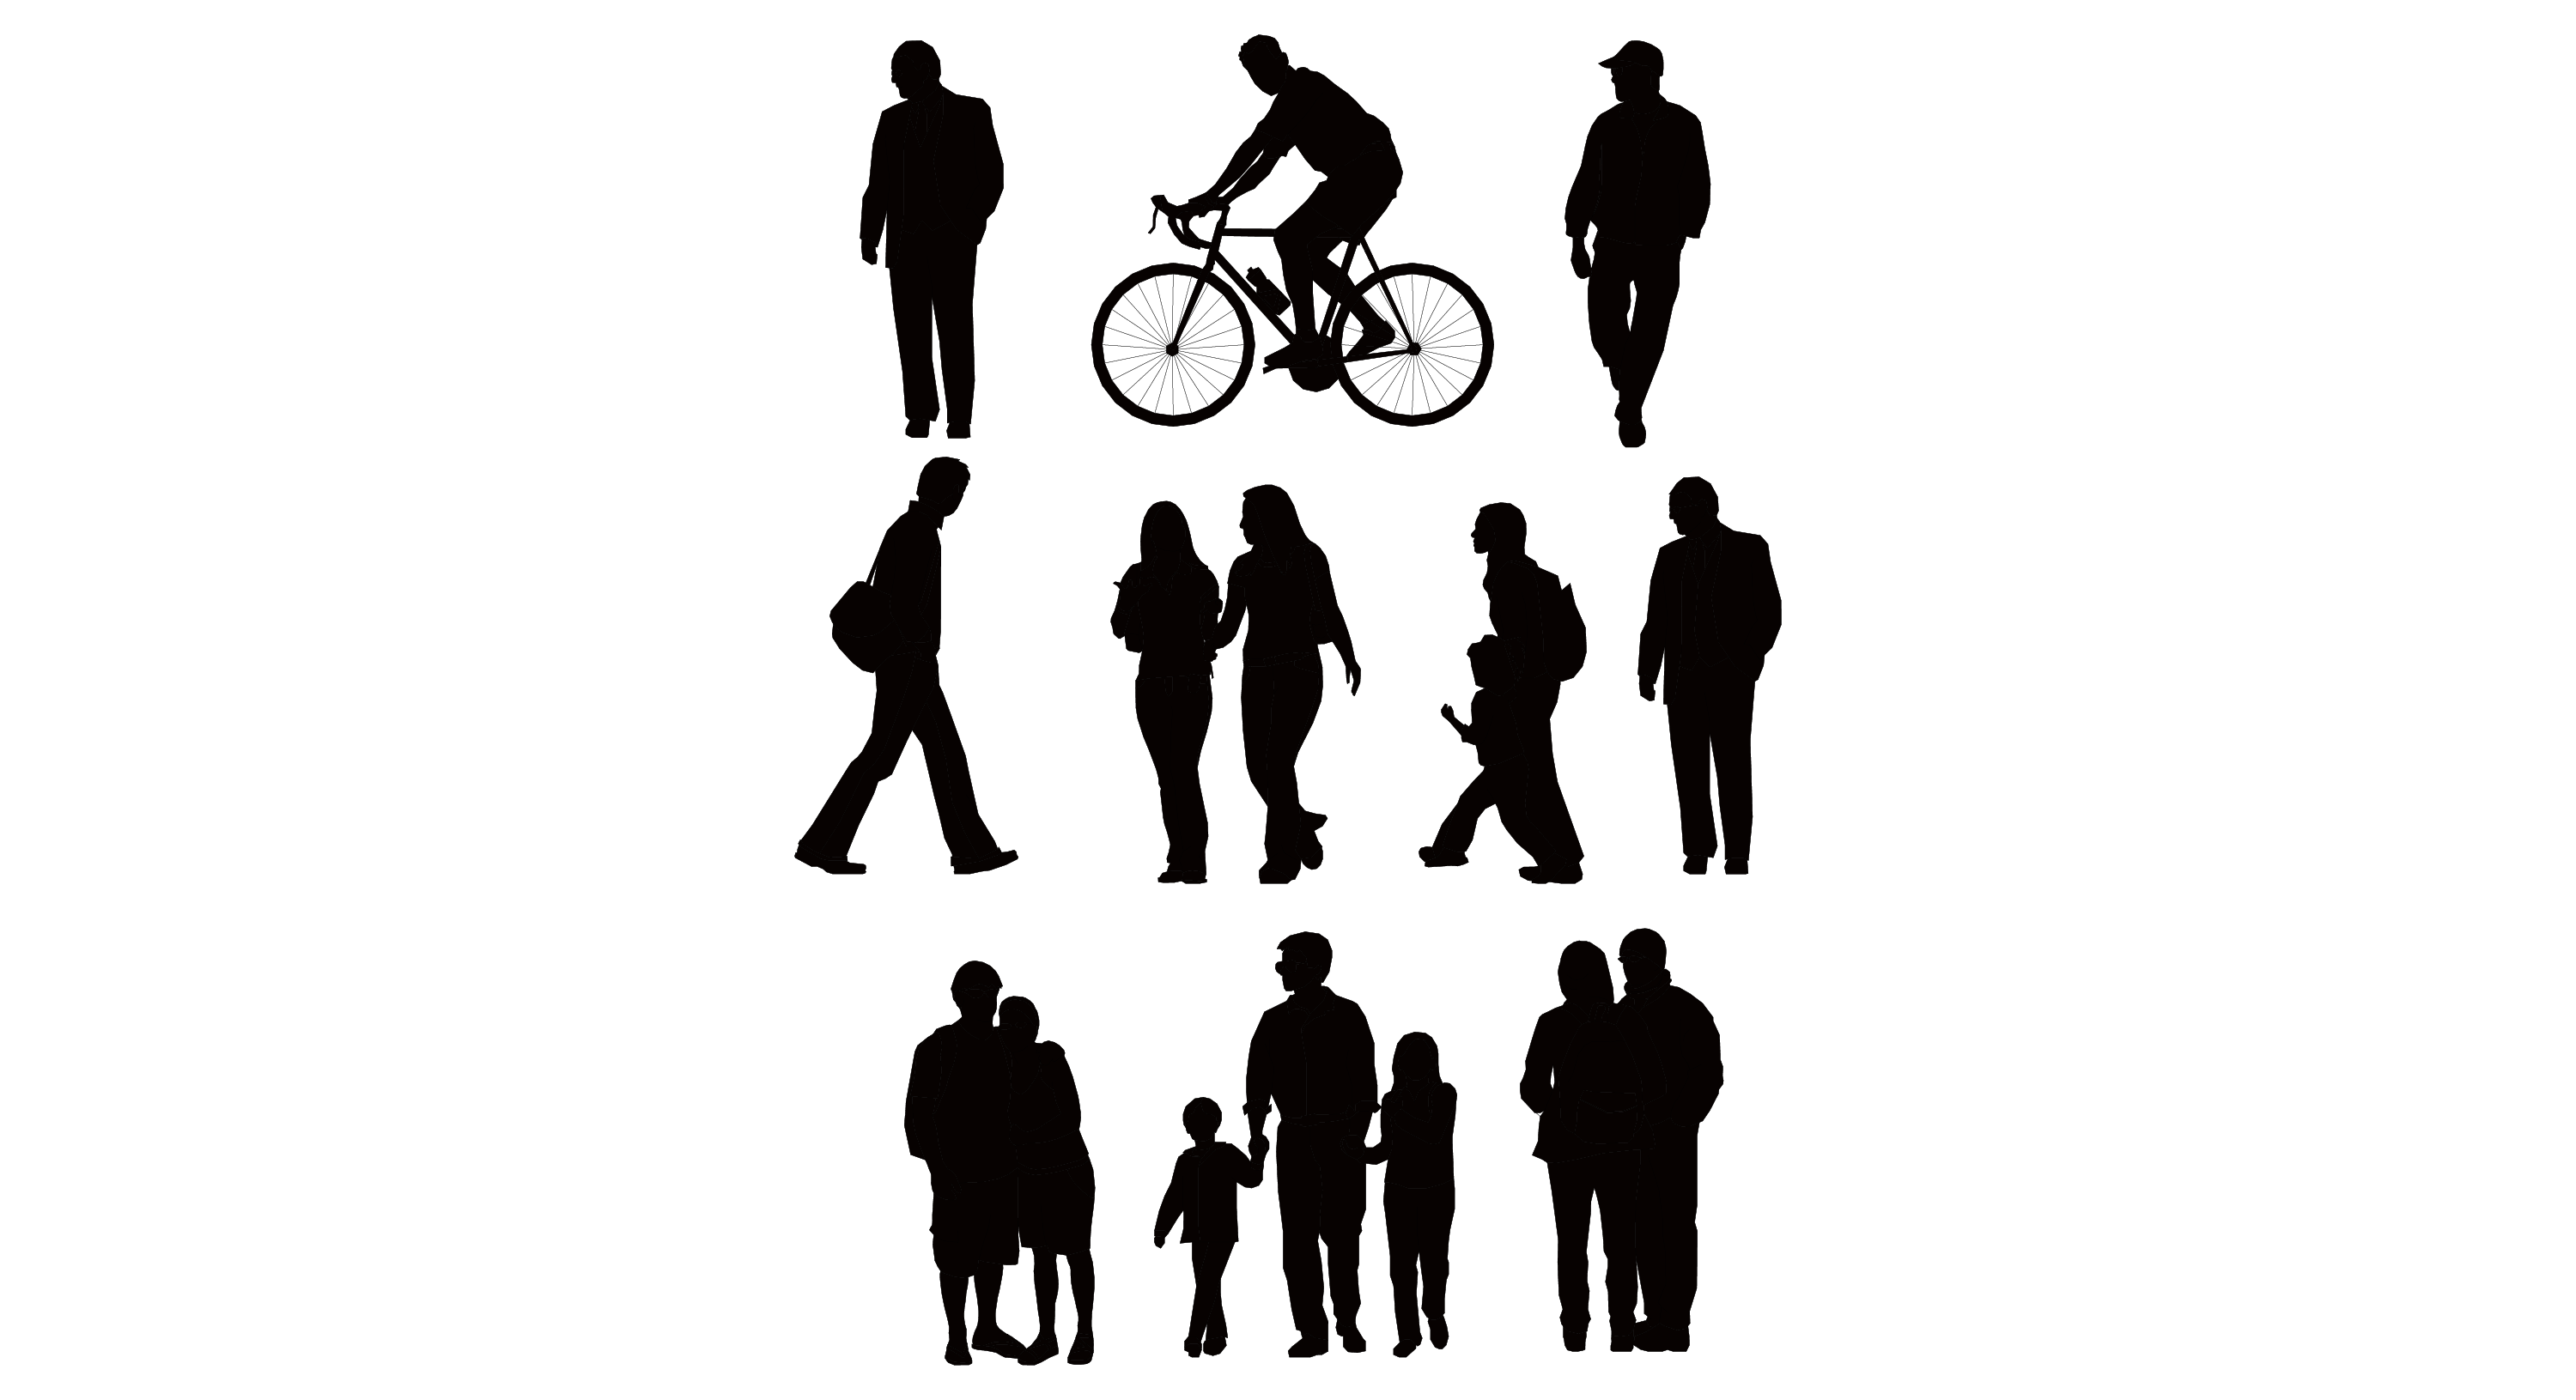 PEOPLE WALKING SYMBOL SILHOUETTE PNG - Google Search ... for Business People Silhouette Png  55dqh